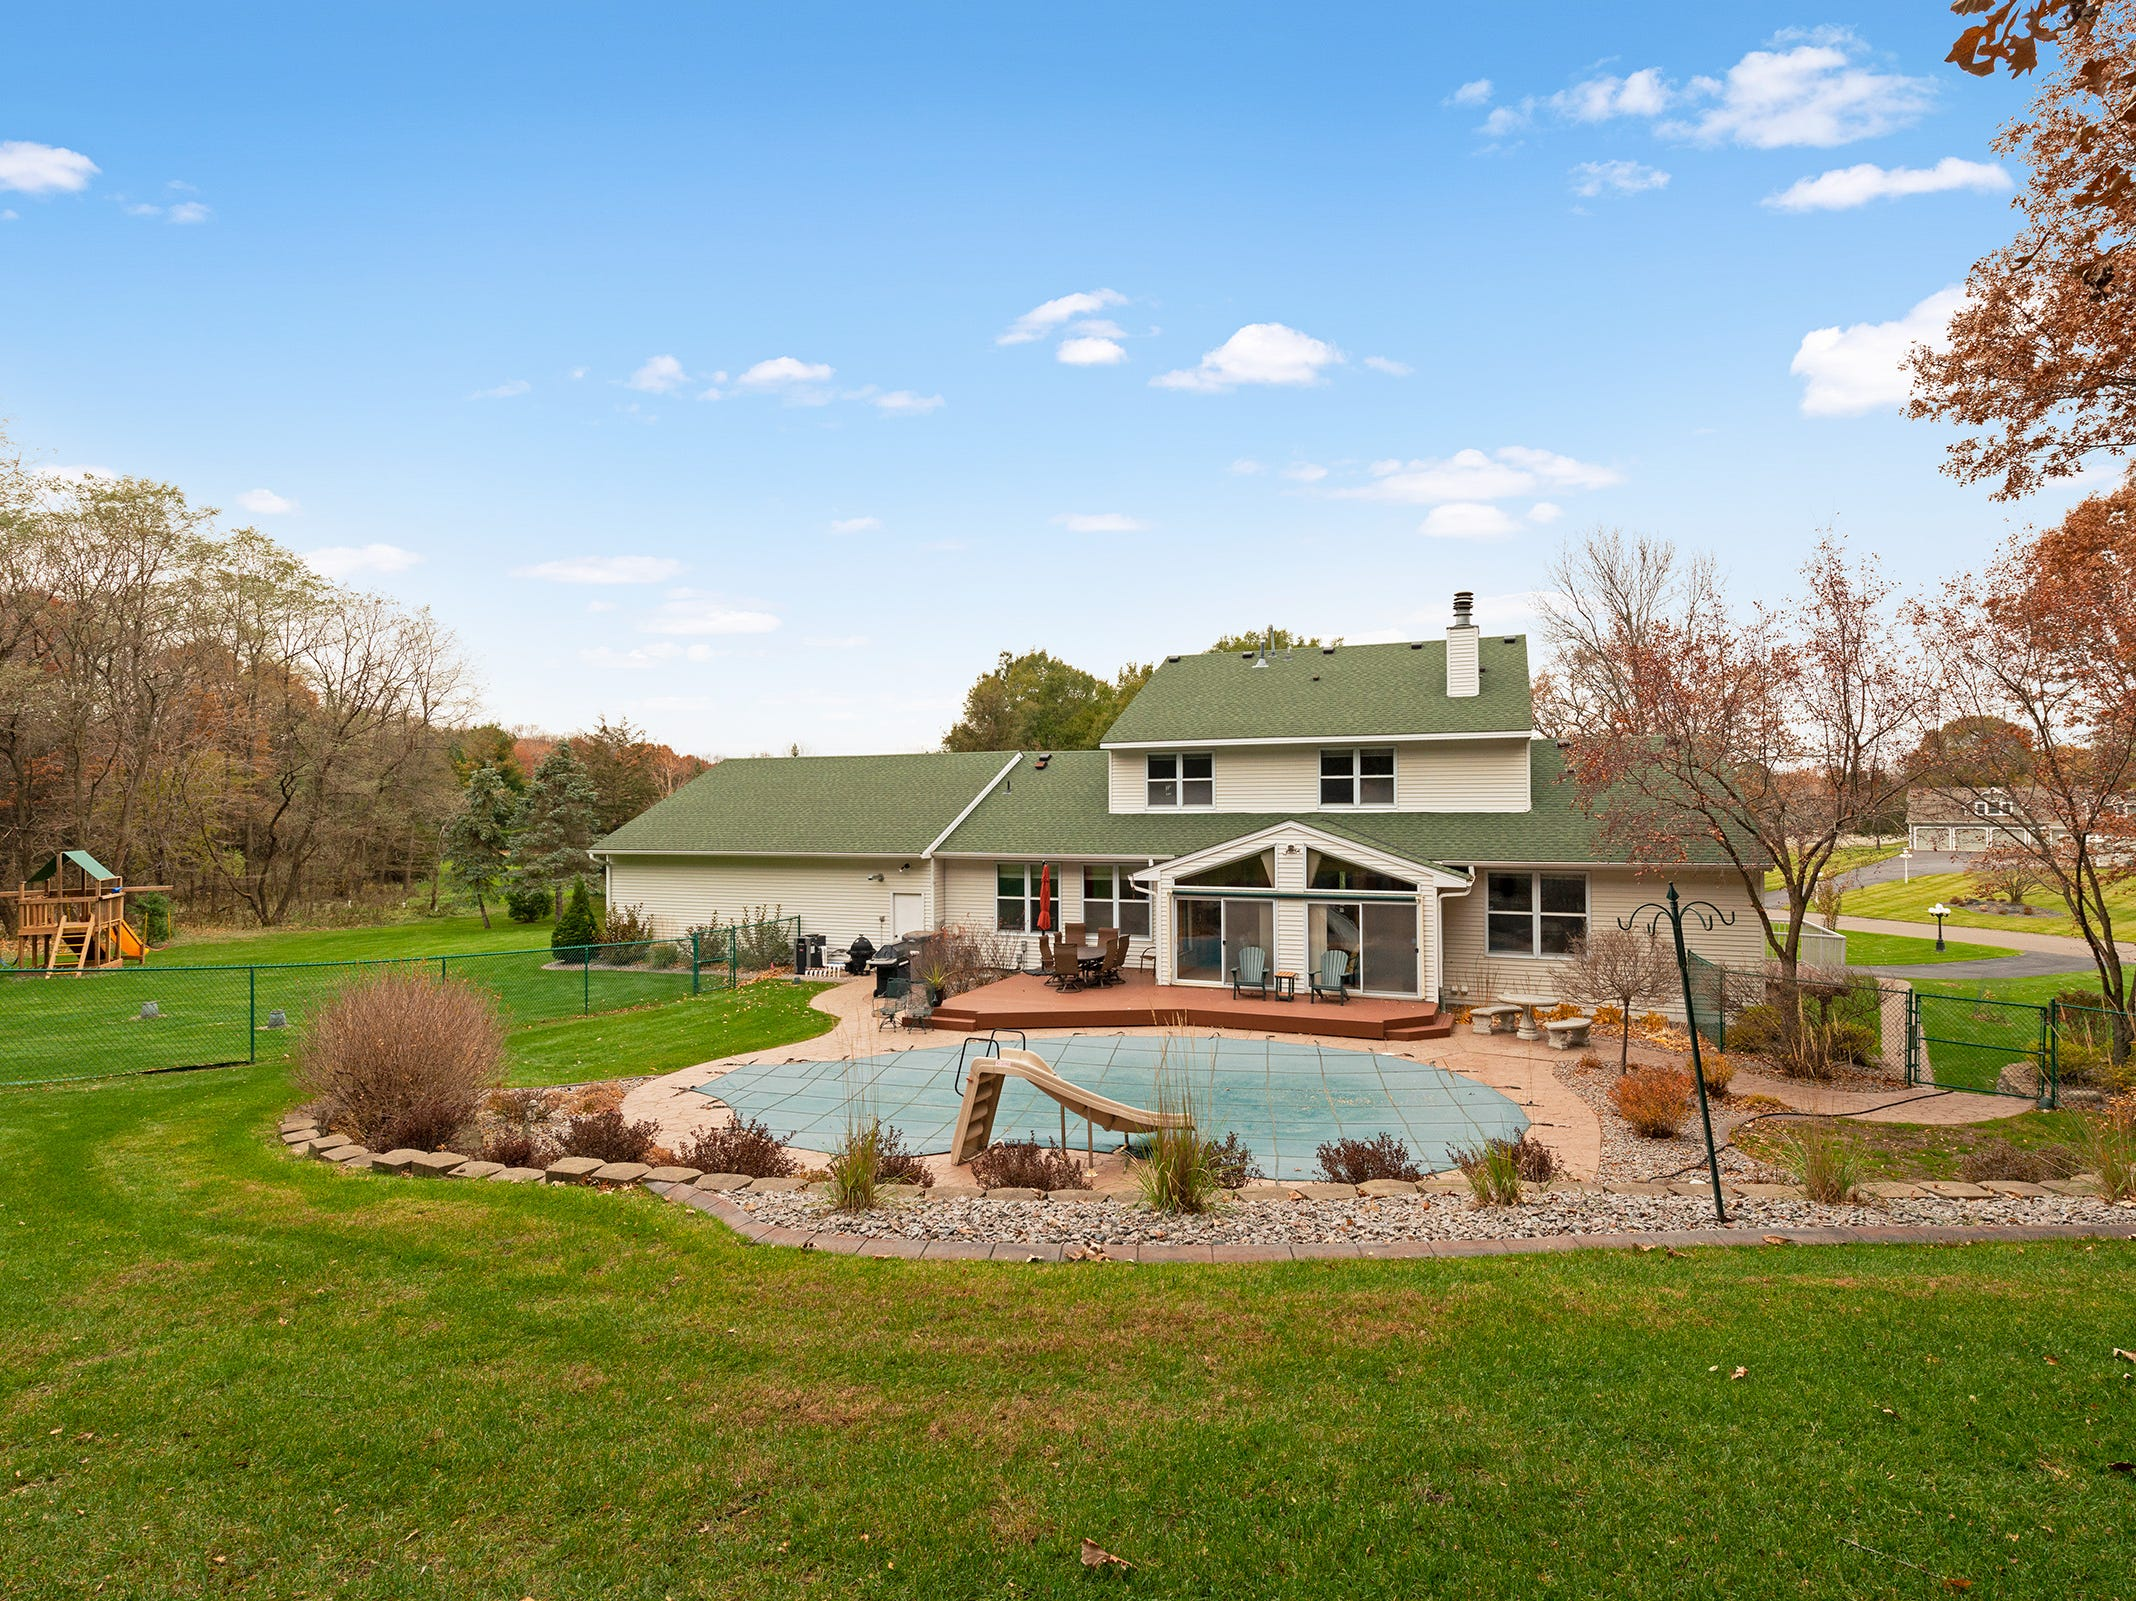 The property includes an in-ground pool, ground-level deck and professional landscaping.